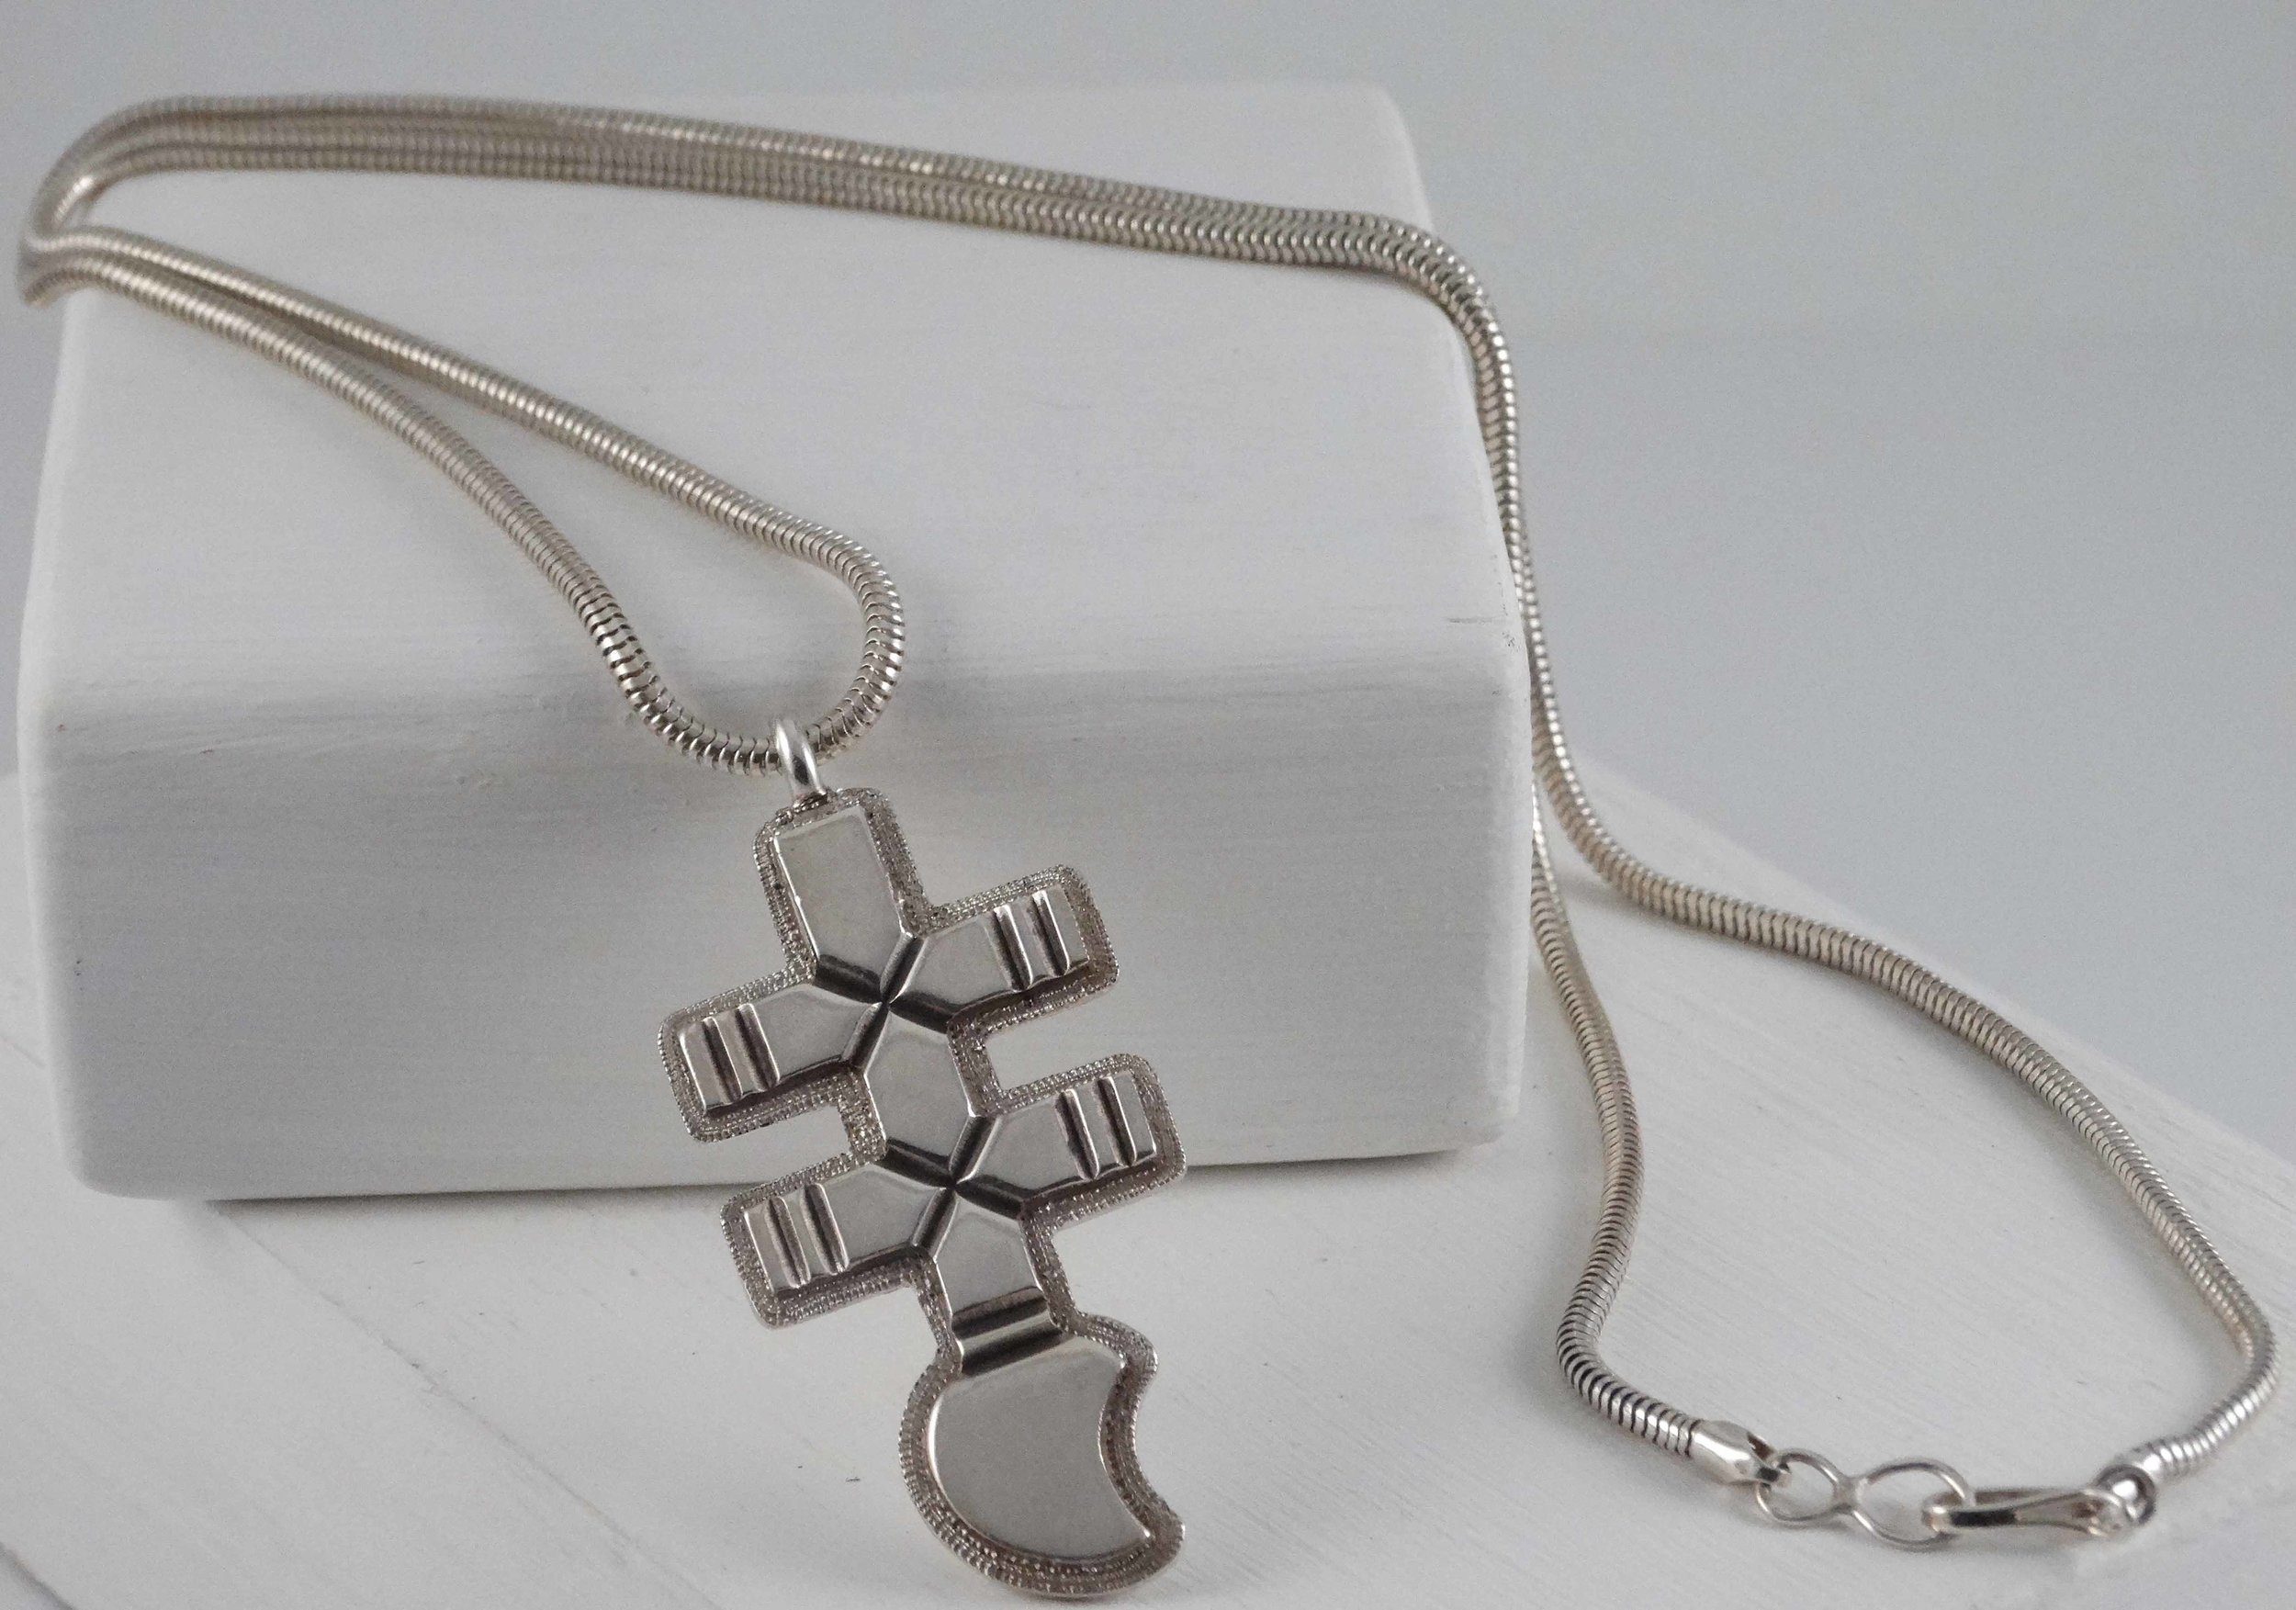 Silver Cross Pendant by Thomas Jim (click to enlarge)